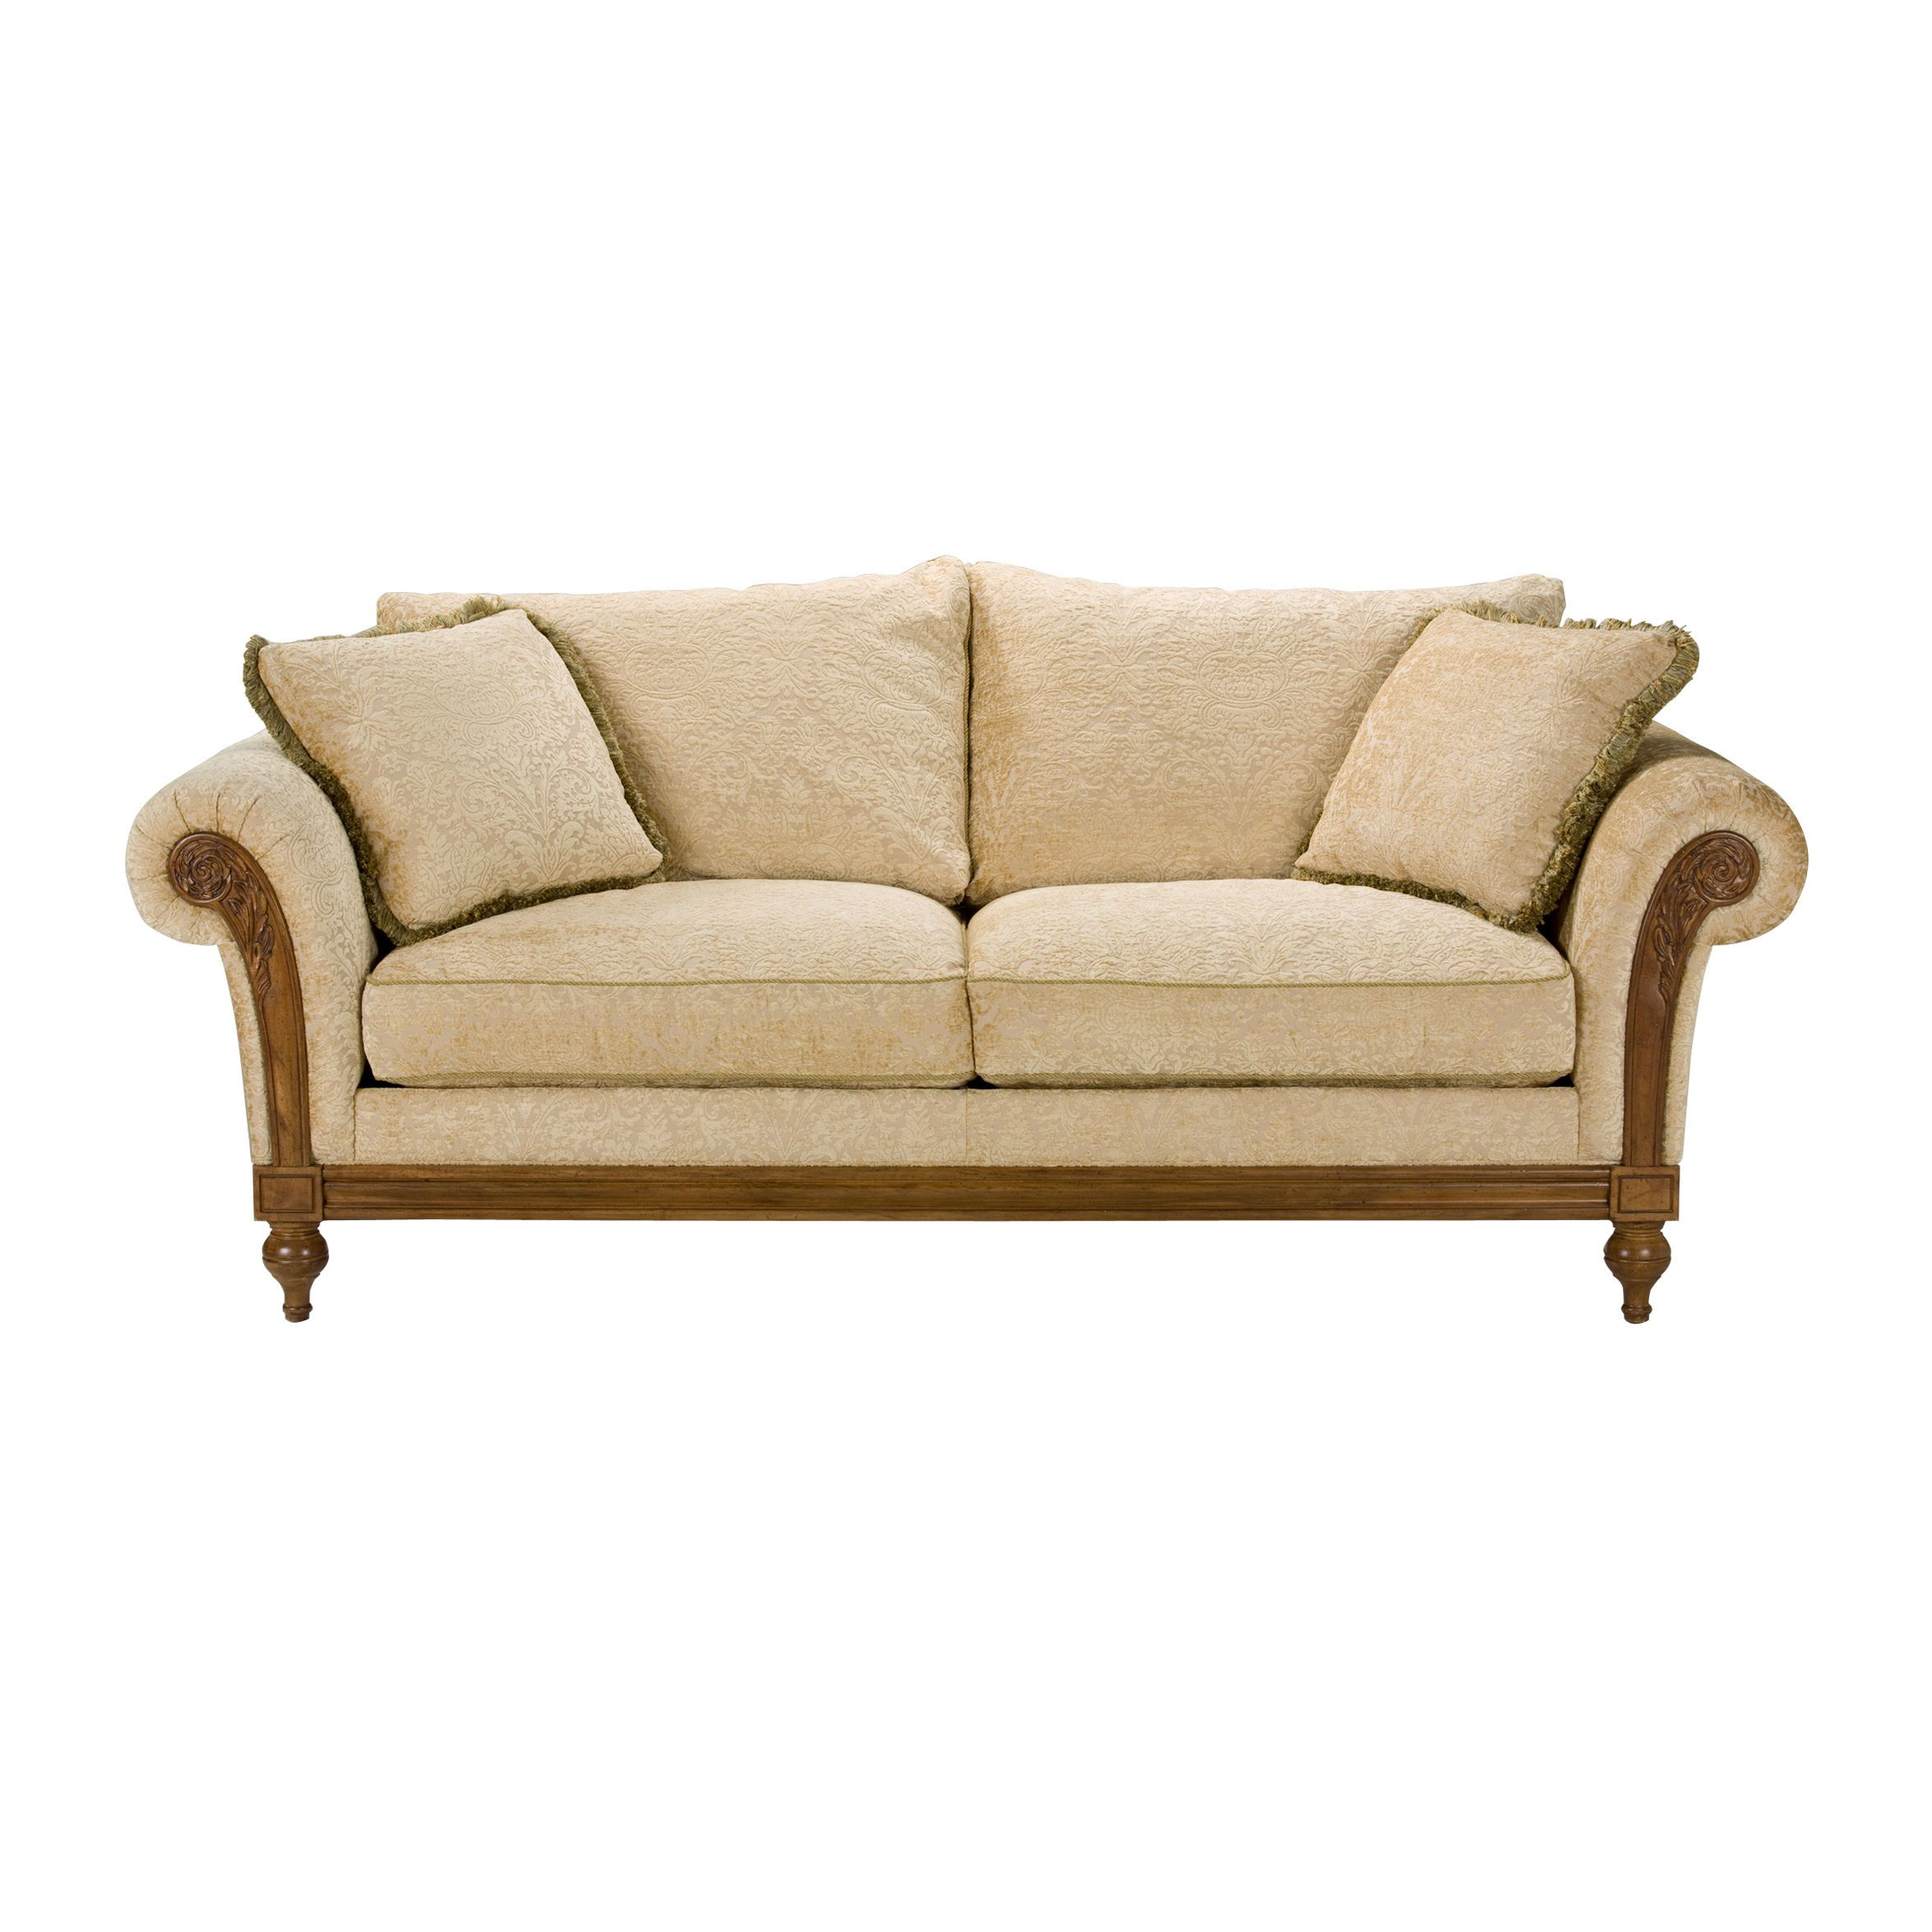 Exceptionnel Pratt Sofa   Ethan Allen US   Like The Color Of The Cushionsu2026may Have To  Get One Made For The Sofa I Have.